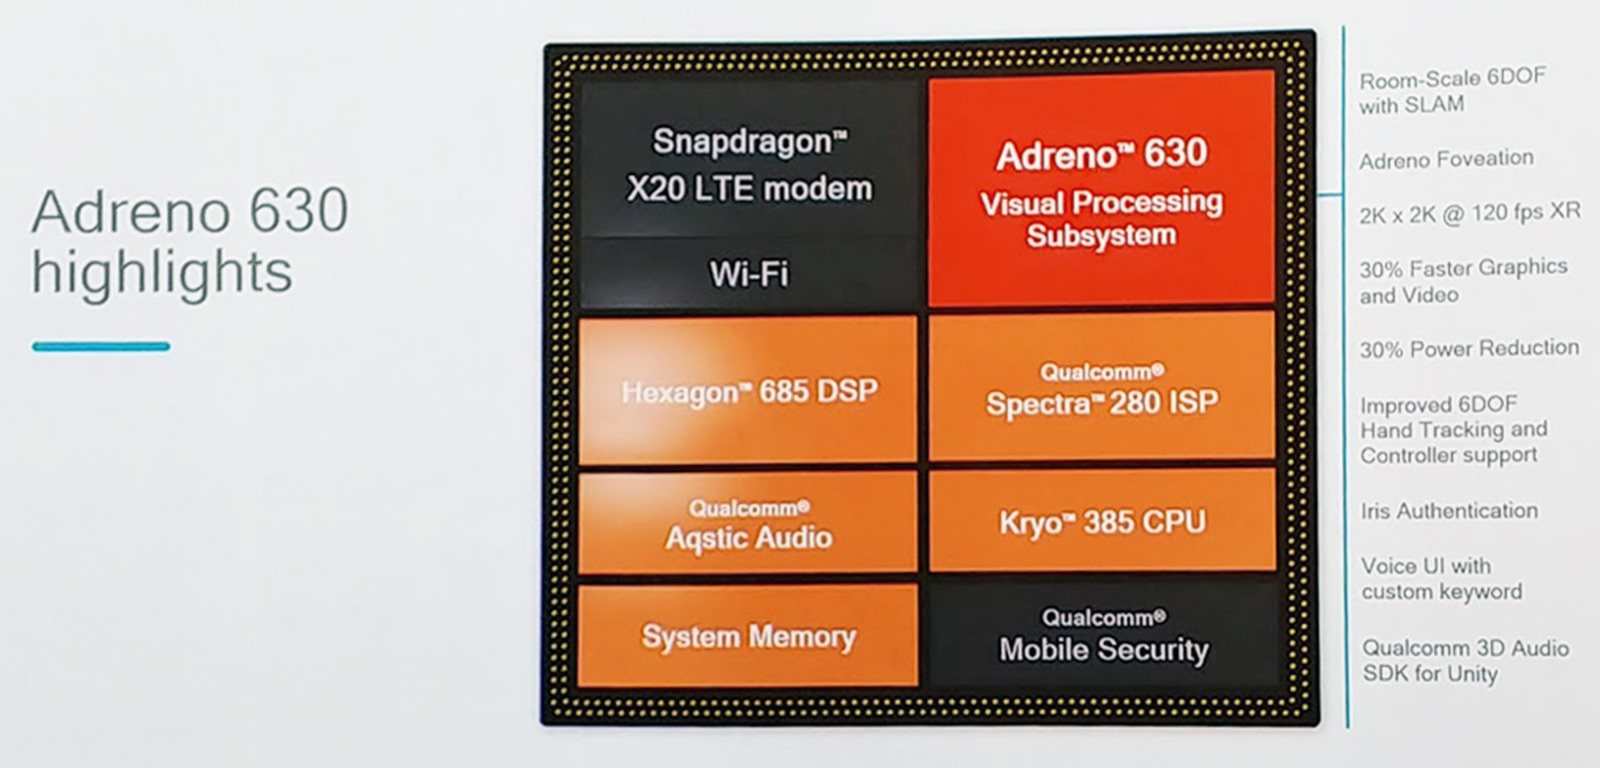 Qualcomm Snapdragon 845 Boosts CPU & GPU Performance With 4K HDR Capture, 3X Faster AI